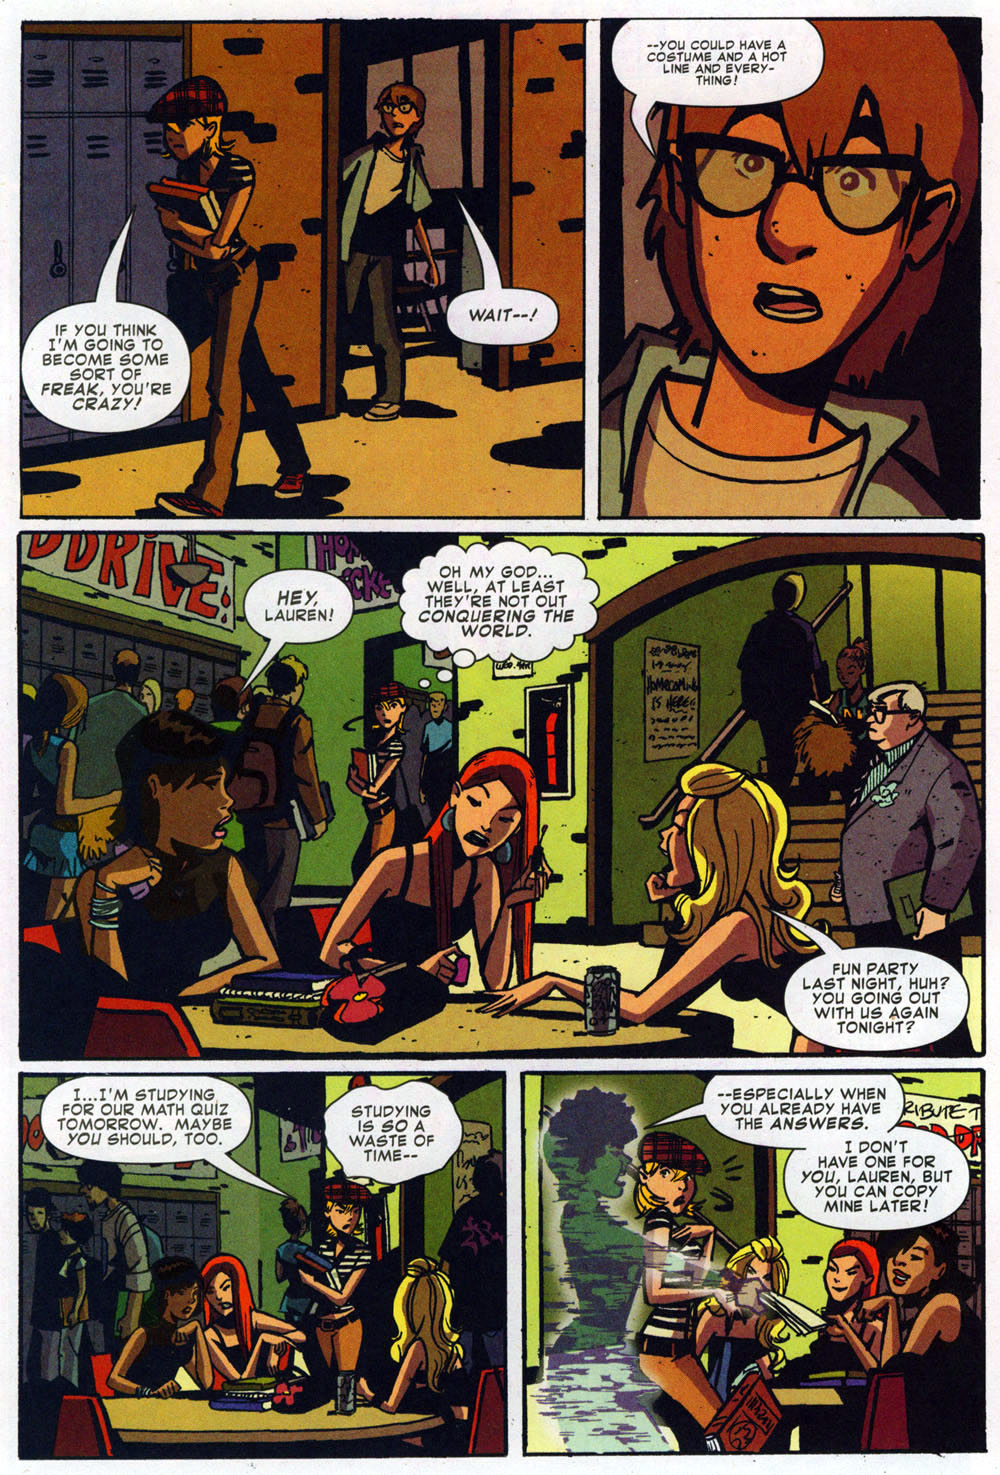 Read online Bad Girls comic -  Issue #1 - 22